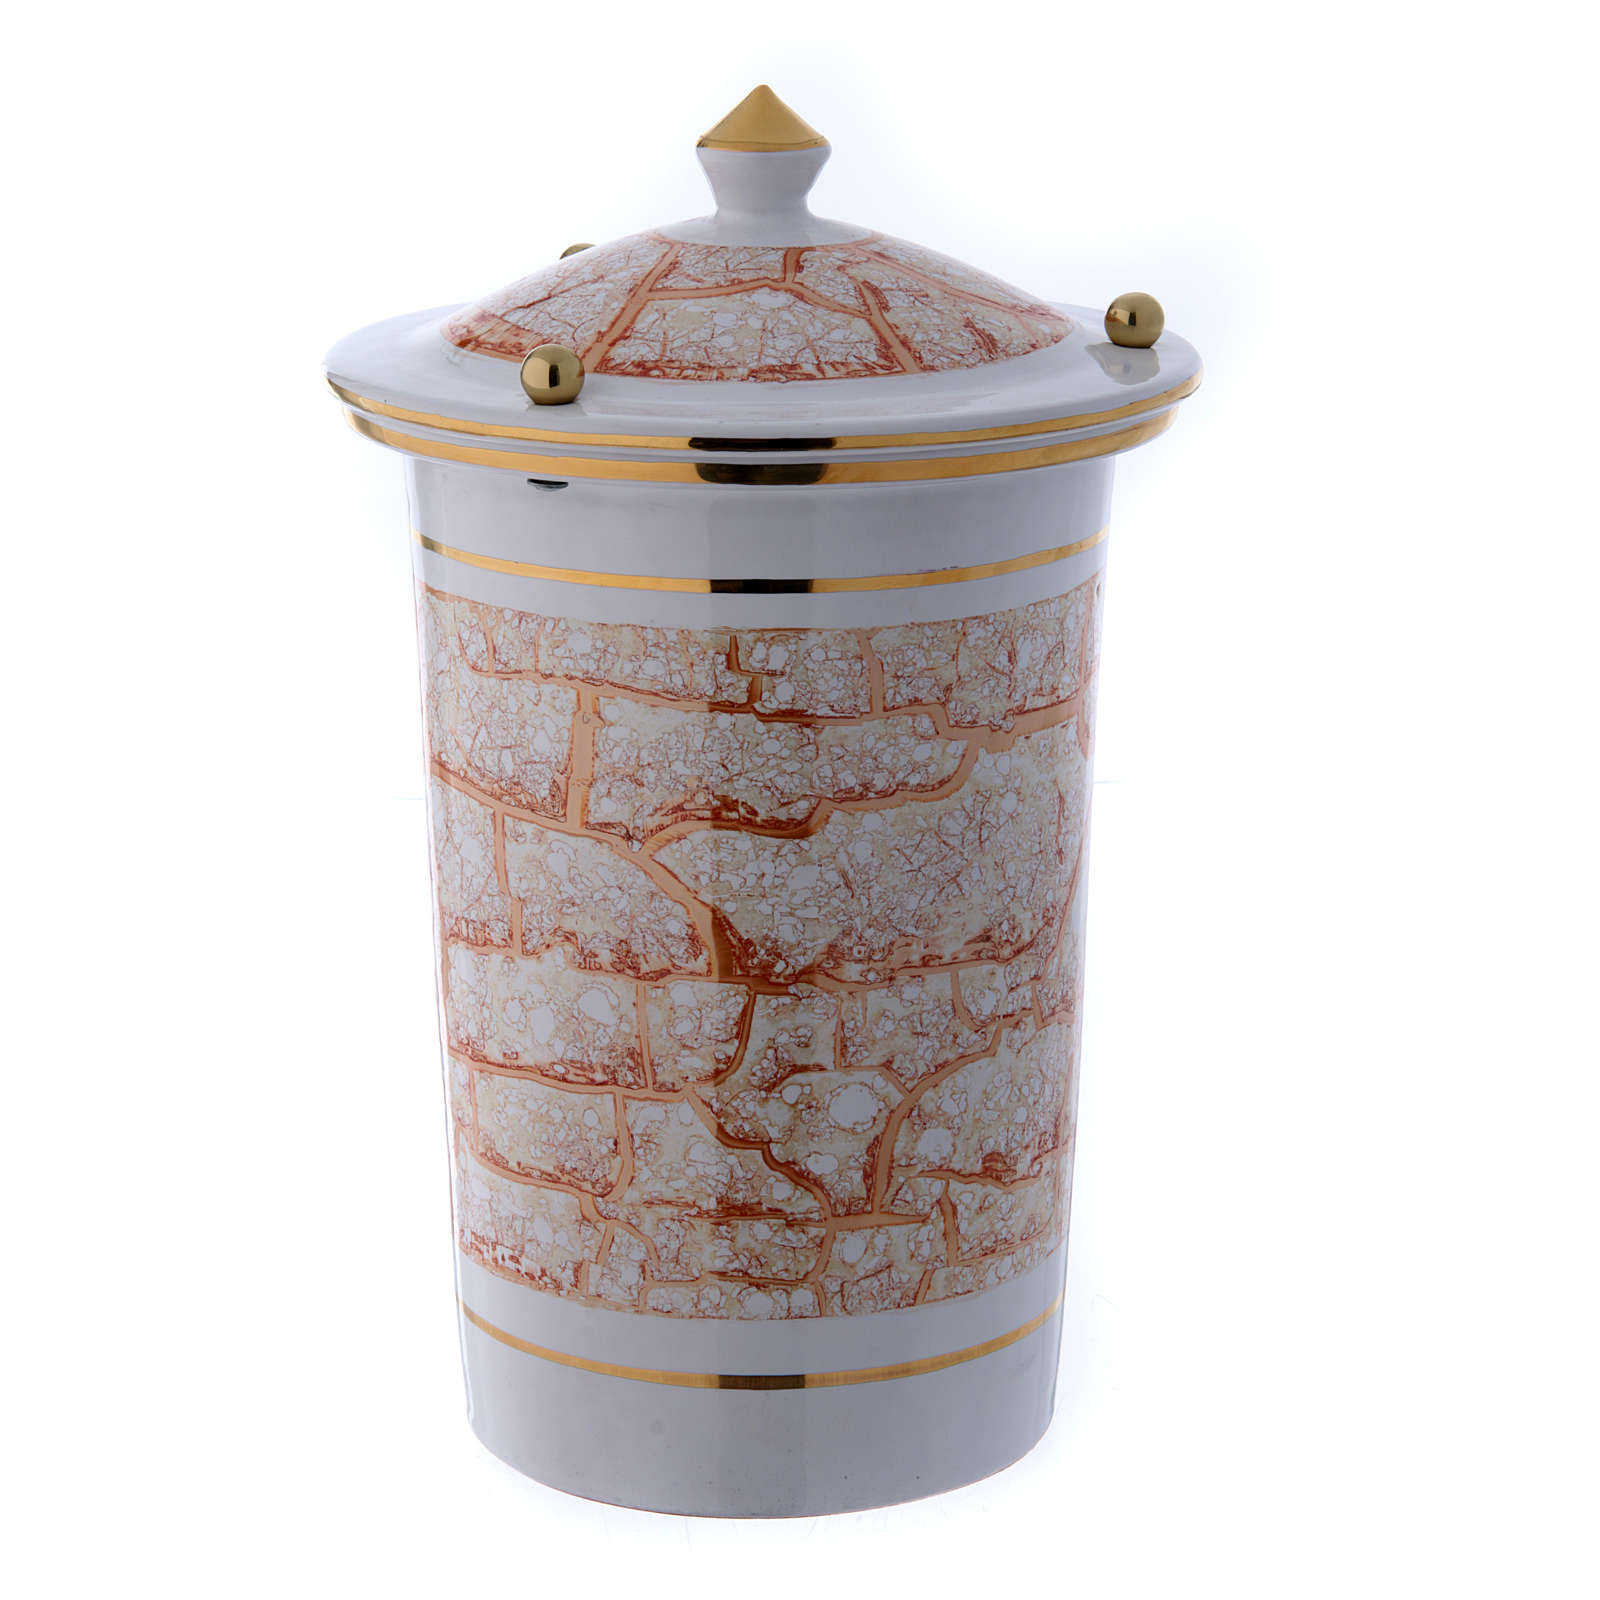 Cinerary urn in ceramic with pommels, white and gold 3